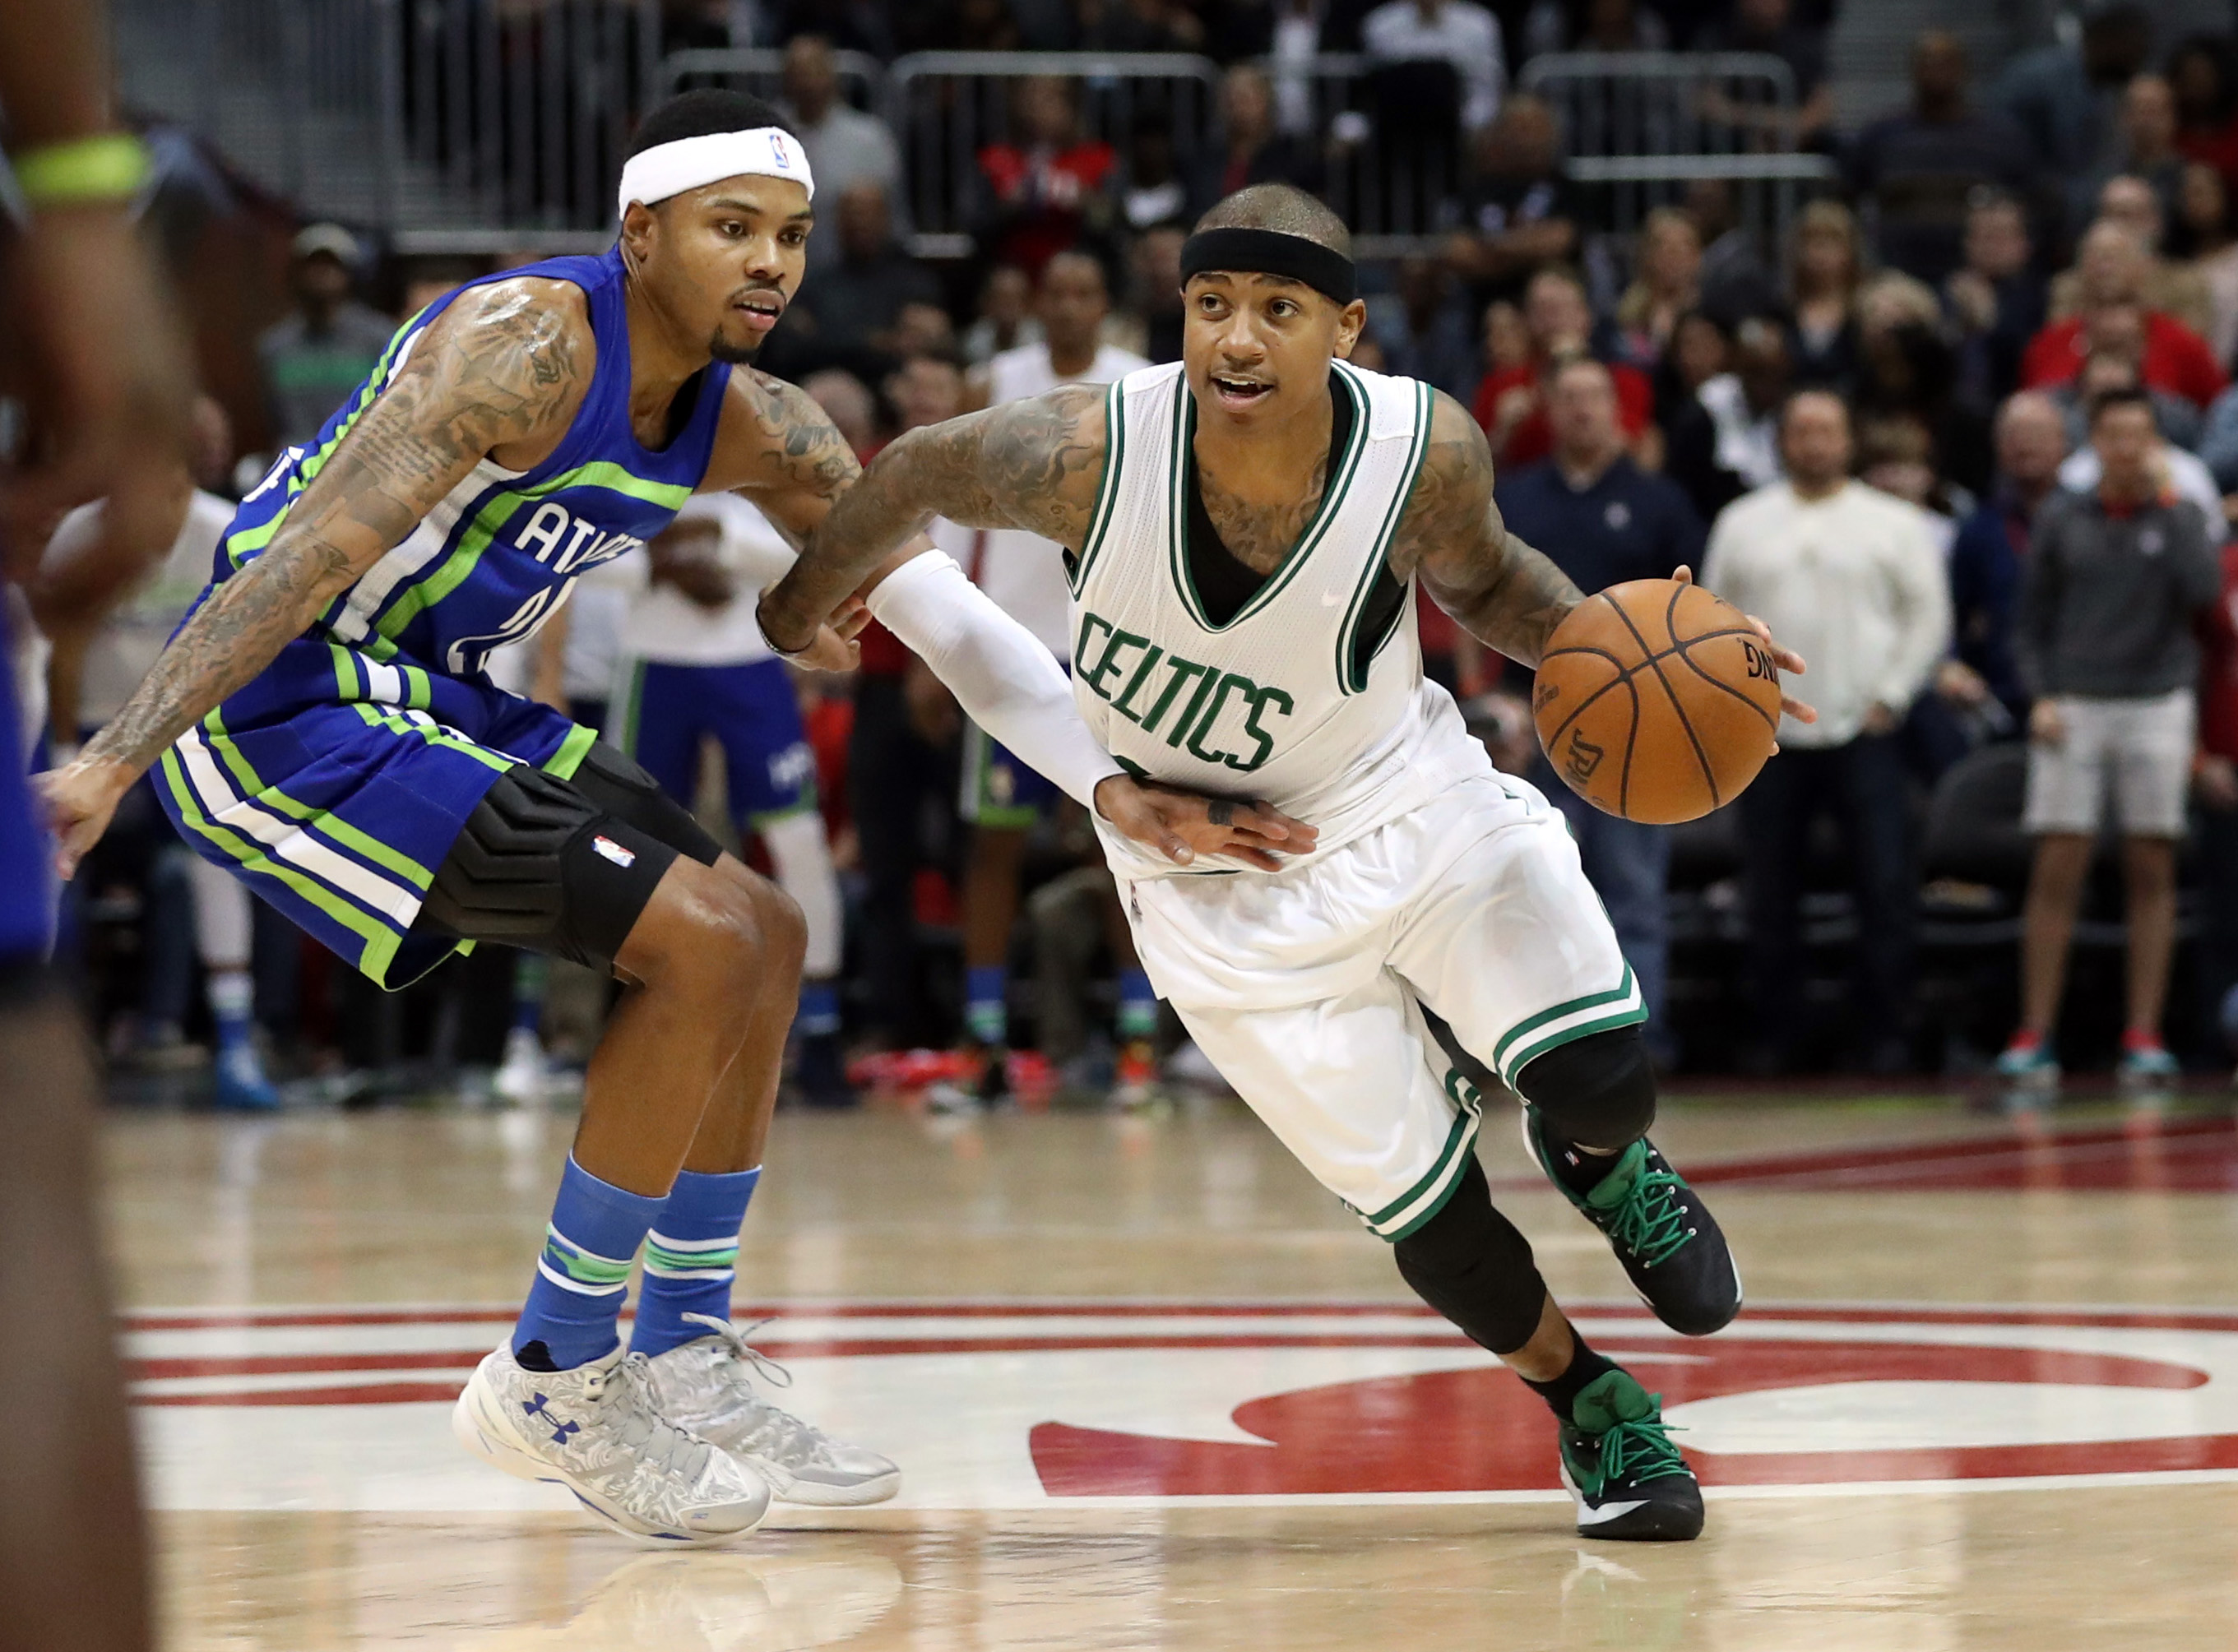 Jan 13, 2017; Atlanta, GA, USA; Boston Celtics guard Isaiah Thomas (4) drives against Atlanta Hawks forward Kent Bazemore (24) in the fourth quarter of their game at Philips Arena. The Celtics won 103-101. Mandatory Credit: Jason Getz-USA TODAY Sports